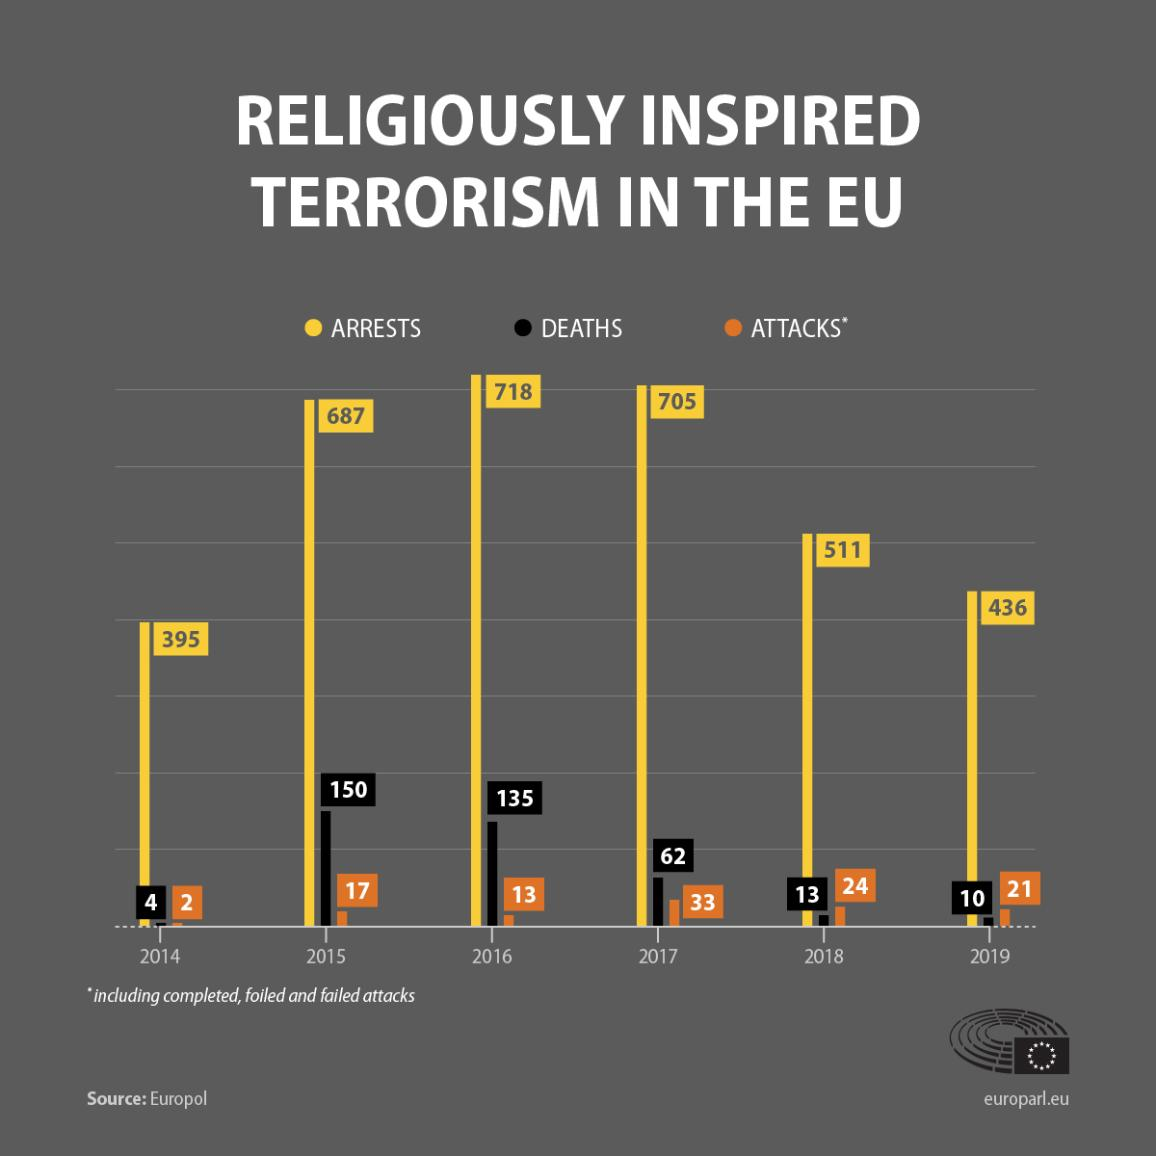 Infographic on religiously inspired terrorism in the EU